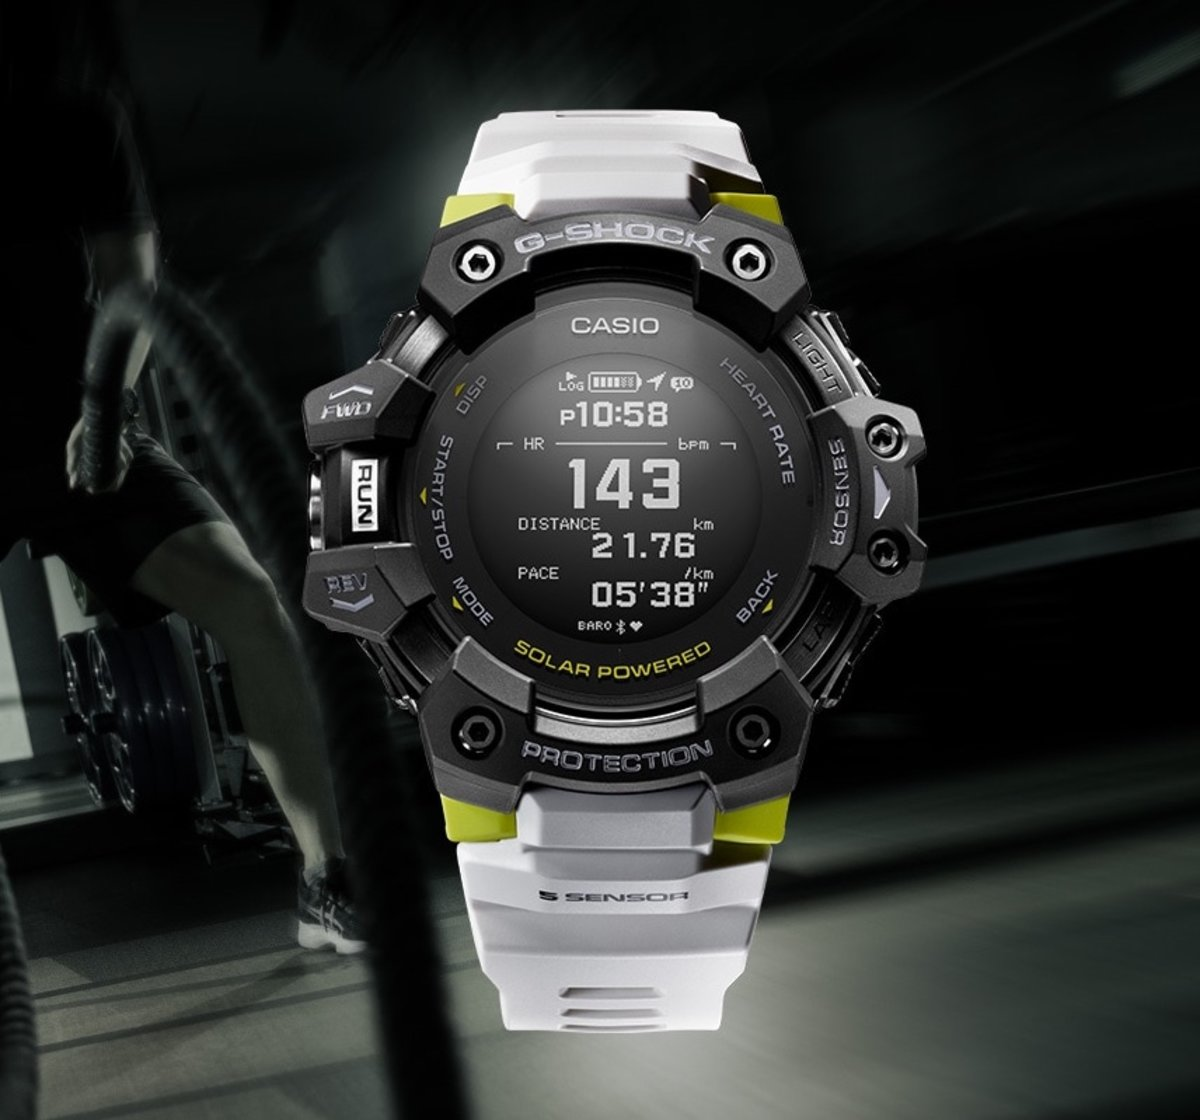 Casio launches a G-Shock with a heart rate monitor and GPS